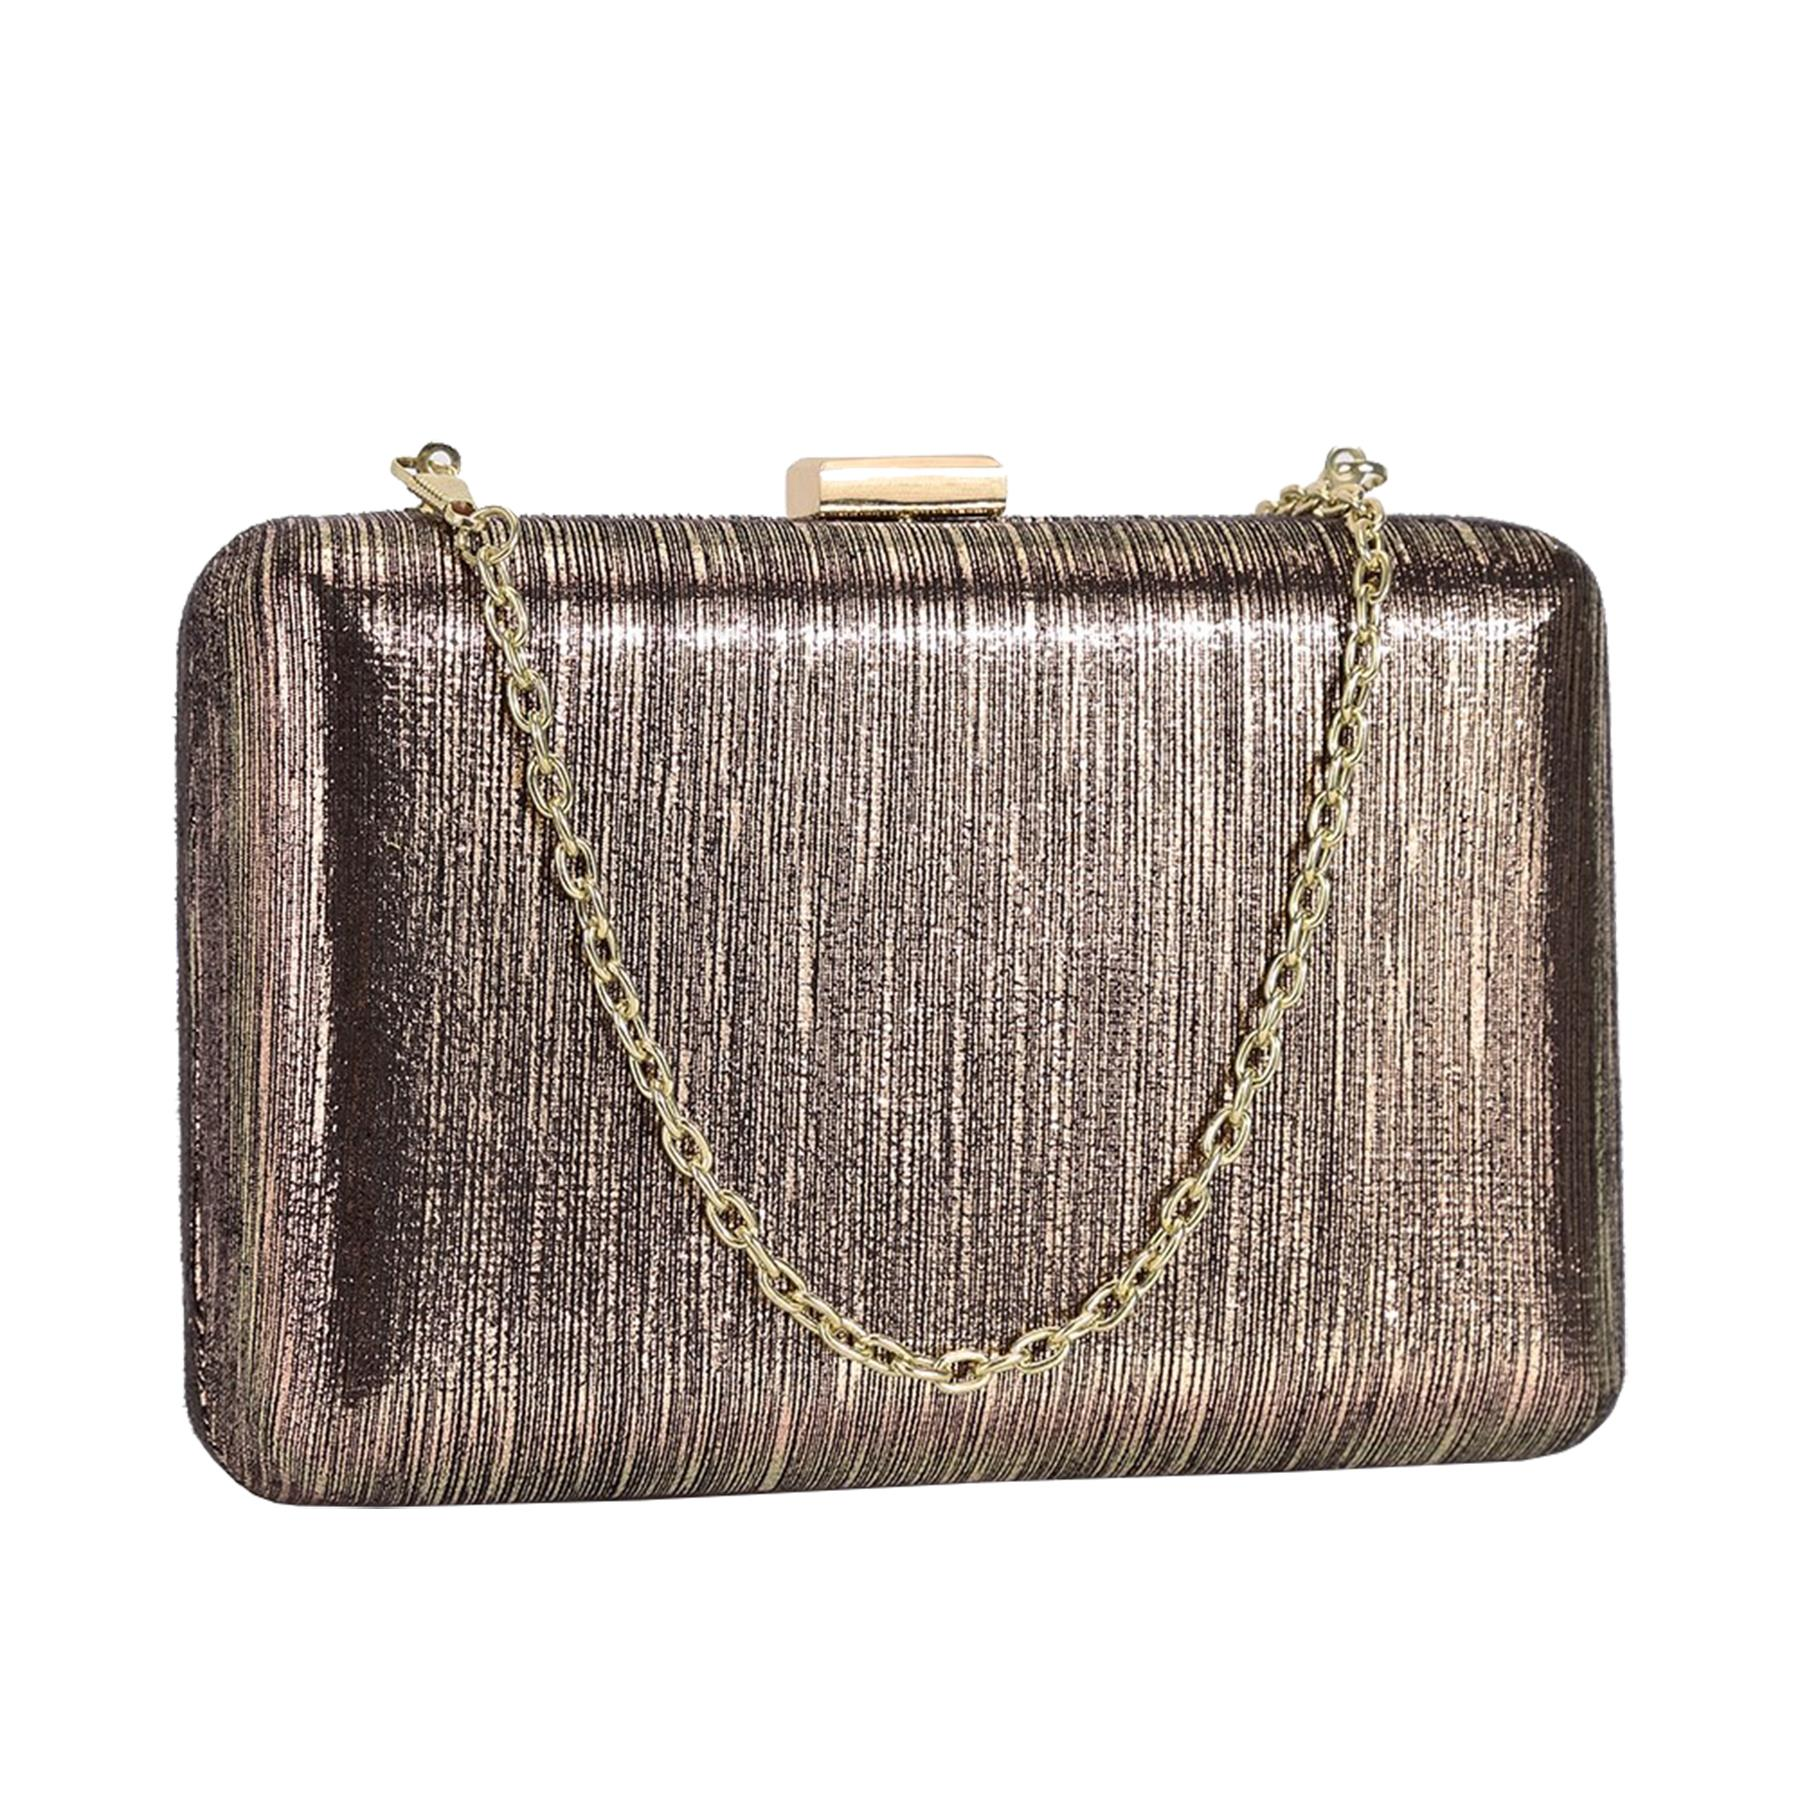 New-Ladies-Hard-Compact-Metallic-Effect-Faux-Leather-Party-Clutch-Bag thumbnail 9